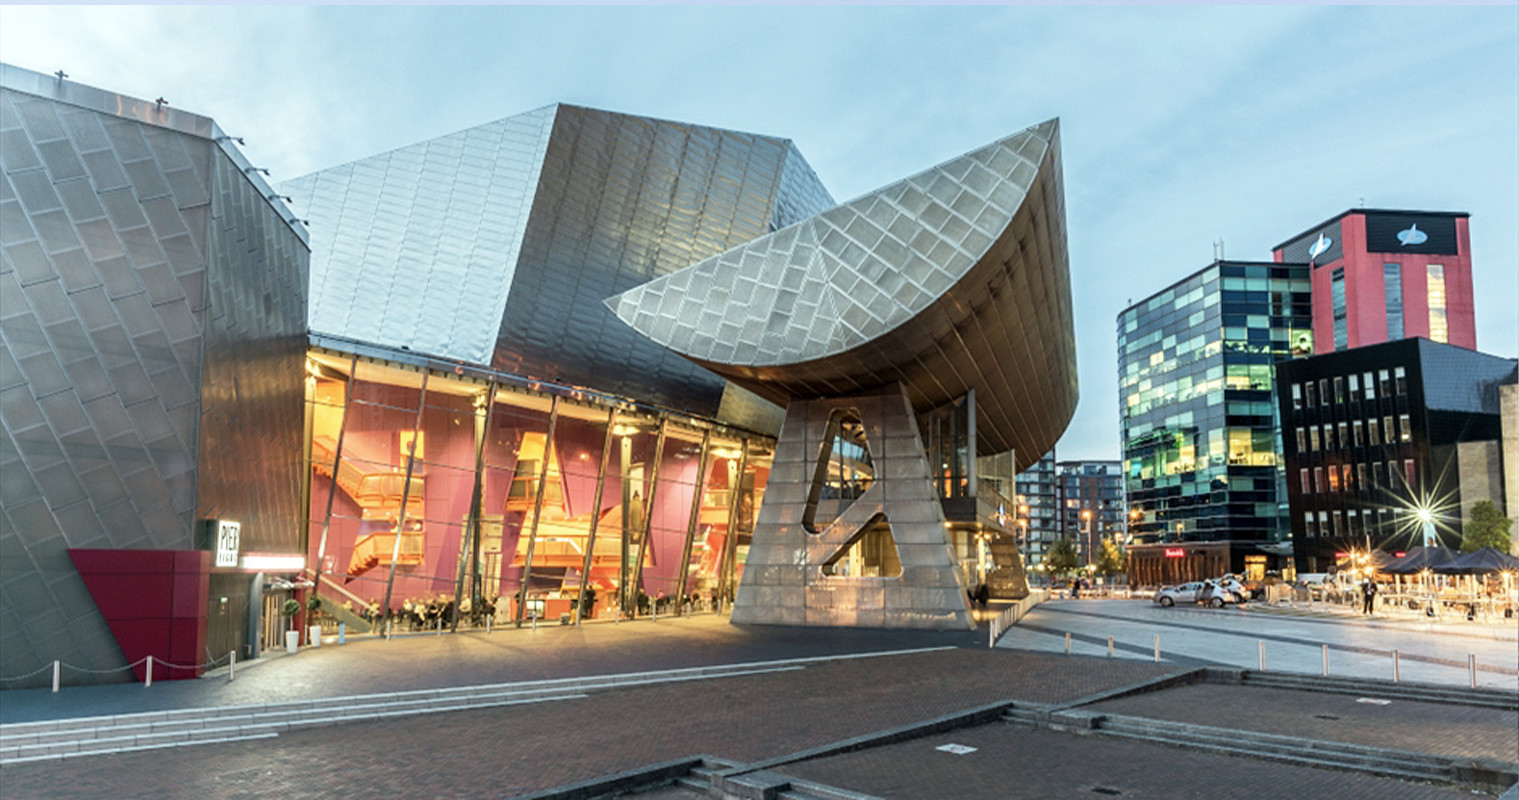 The Lowry theatre to become the first makeshift court in the UK, The Manc